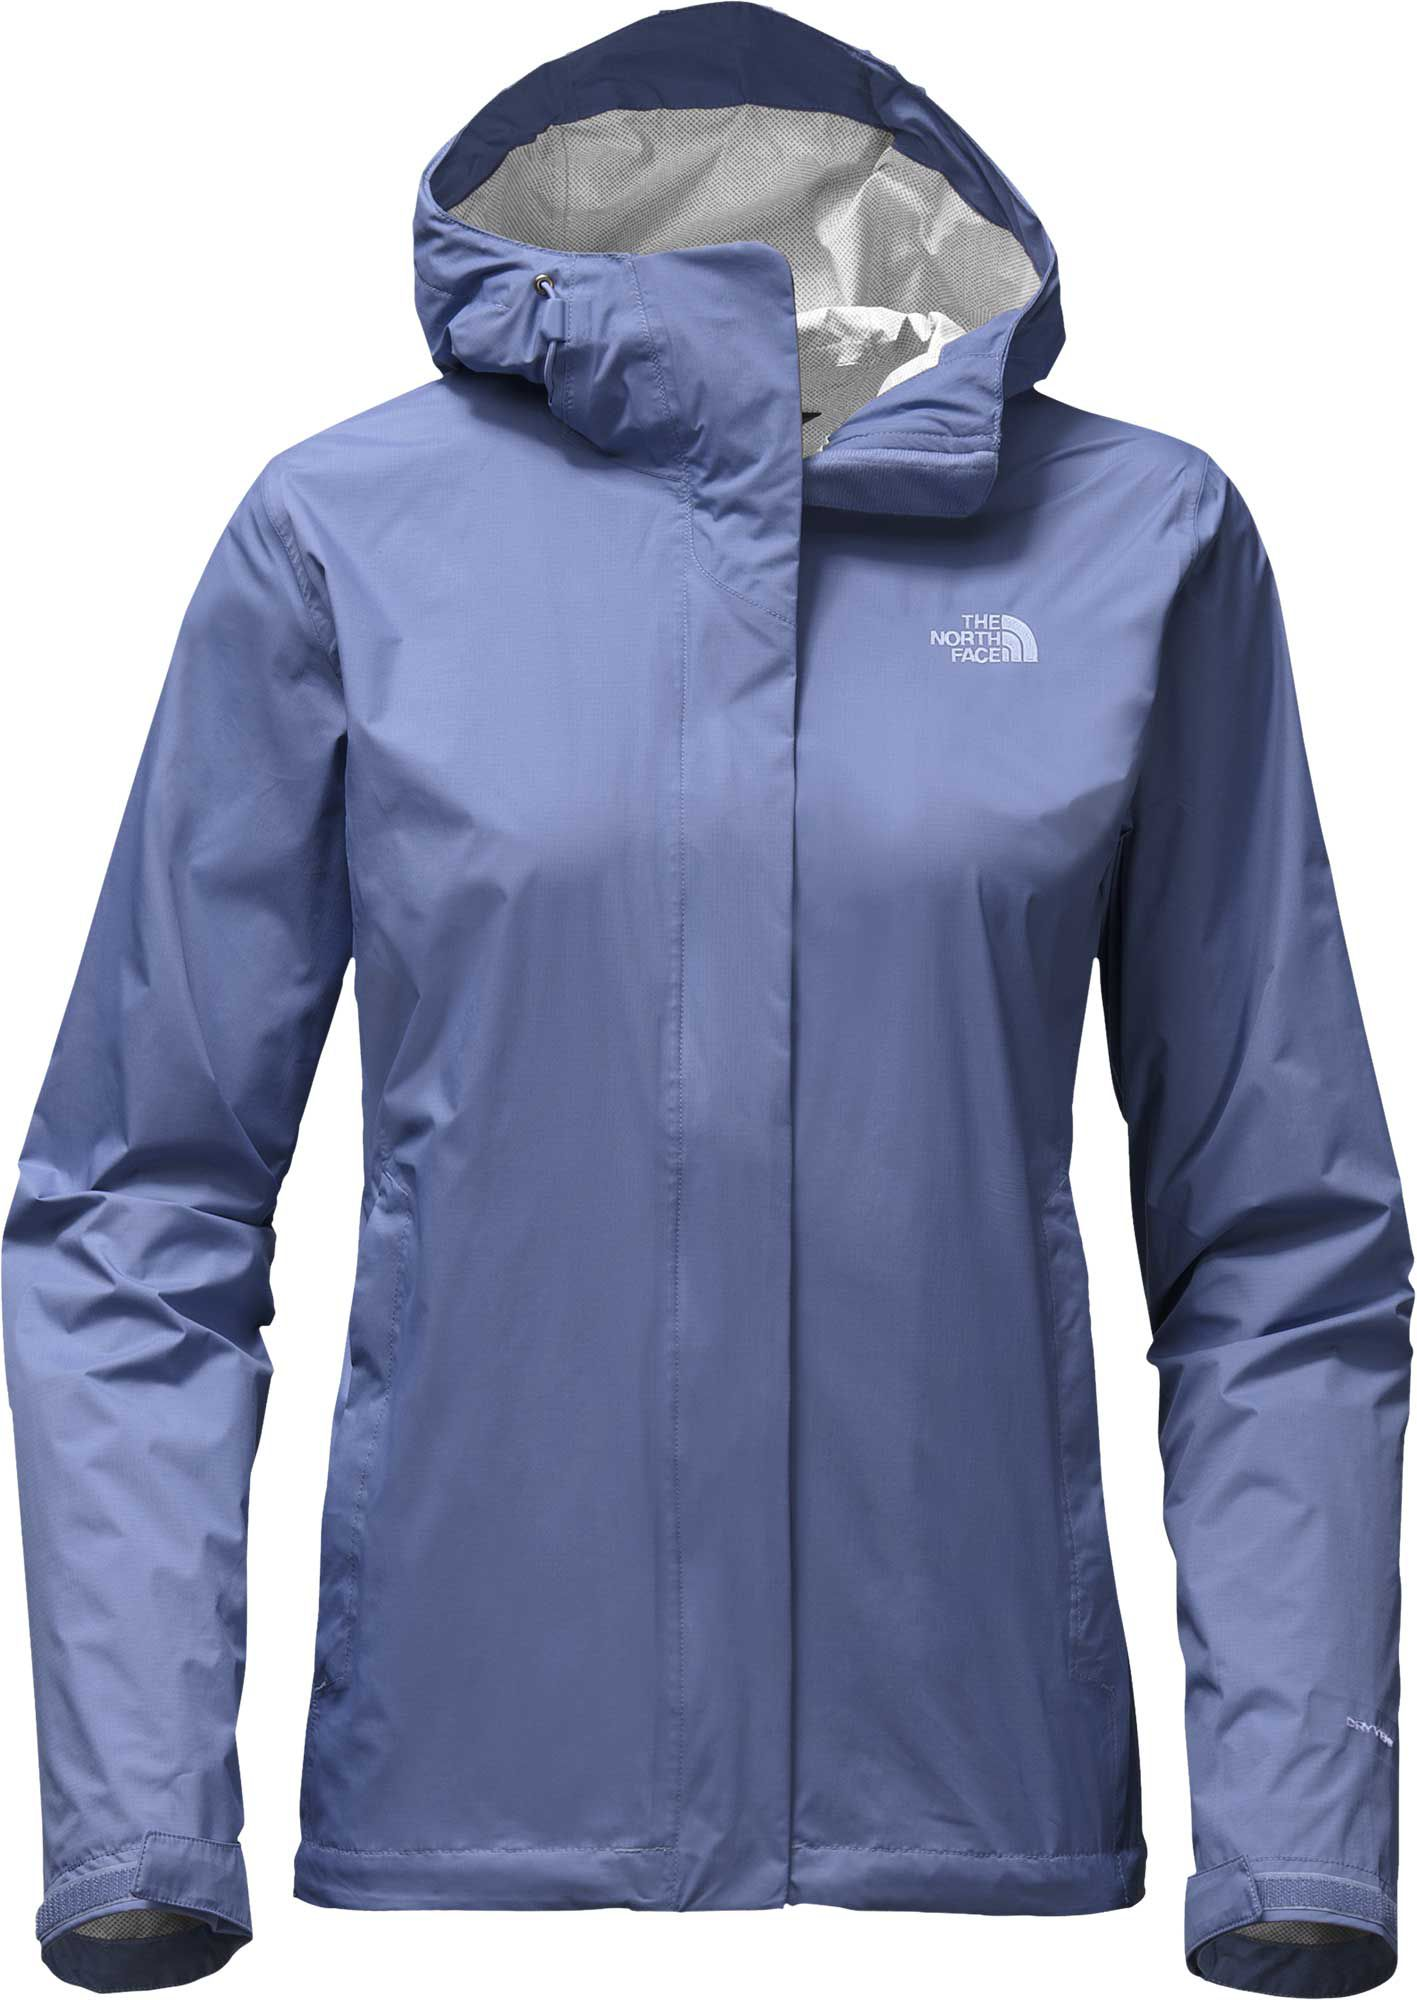 Nike jacket army - Product Image The North Face Women S Venture 2 Jacket